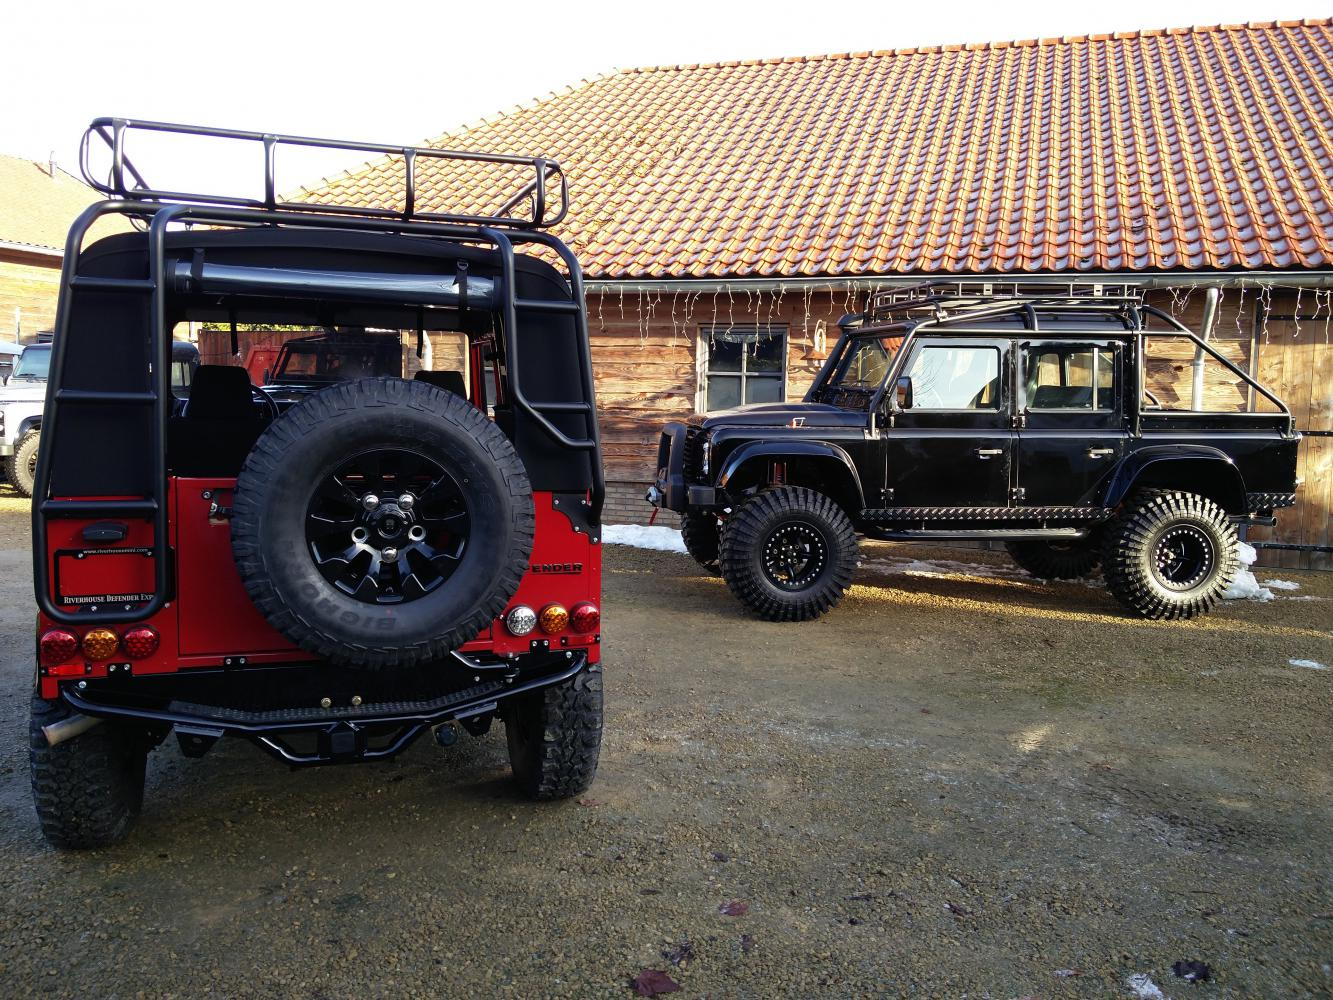 Click image for larger version  Name:Winter 2017 2 x defender red soft top and Spectre.jpg Views:82 Size:299.4 KB ID:336817